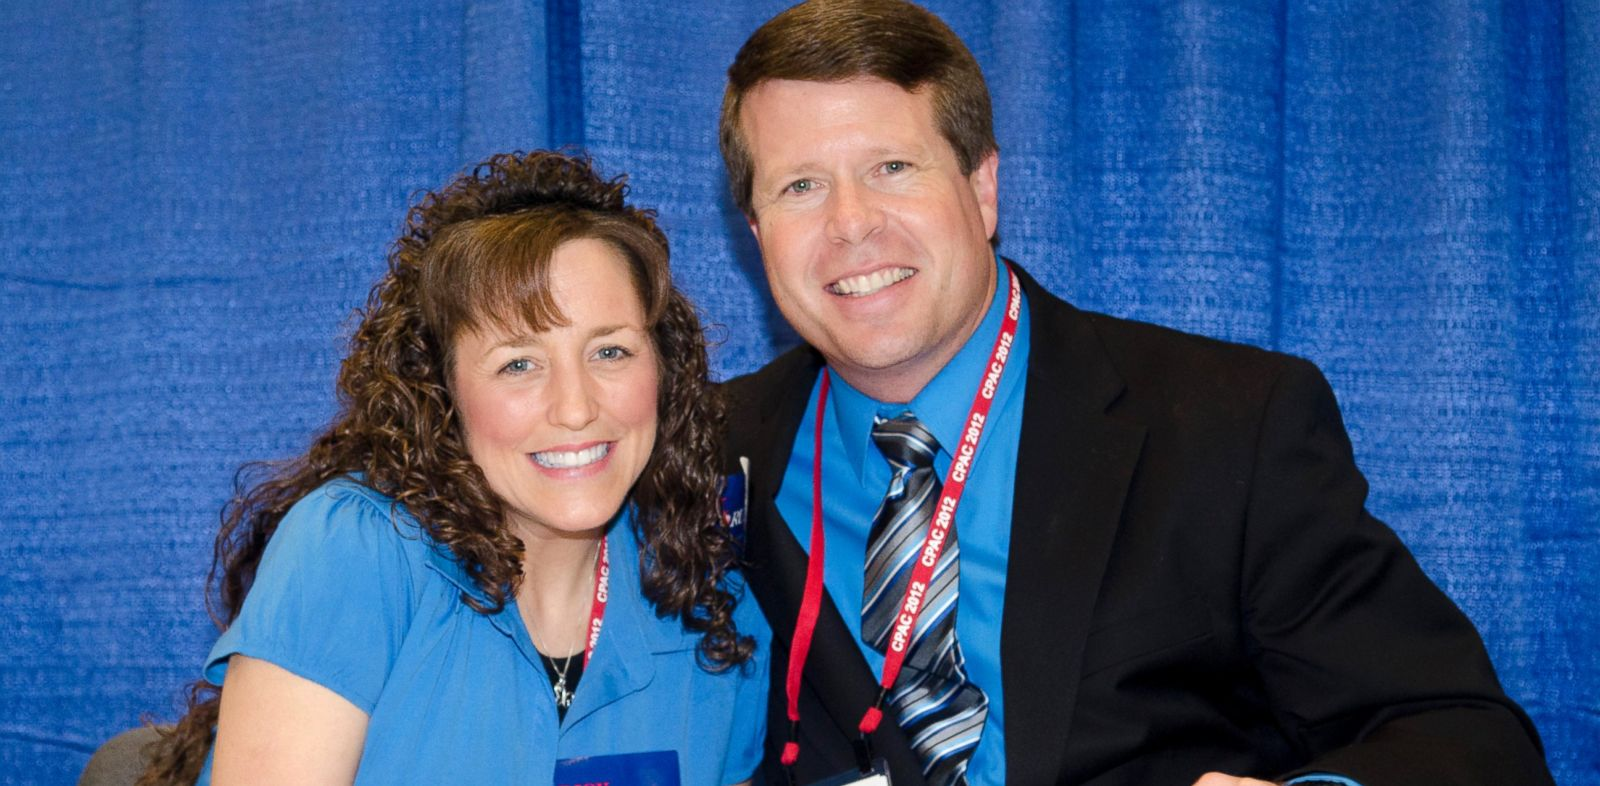 PHOTO: Michelle and JimBob Duggar promote their book A Love That Multiplies during the Conservative Political Action Conference (CPAC), Feb. 10, 2012, in Washington.